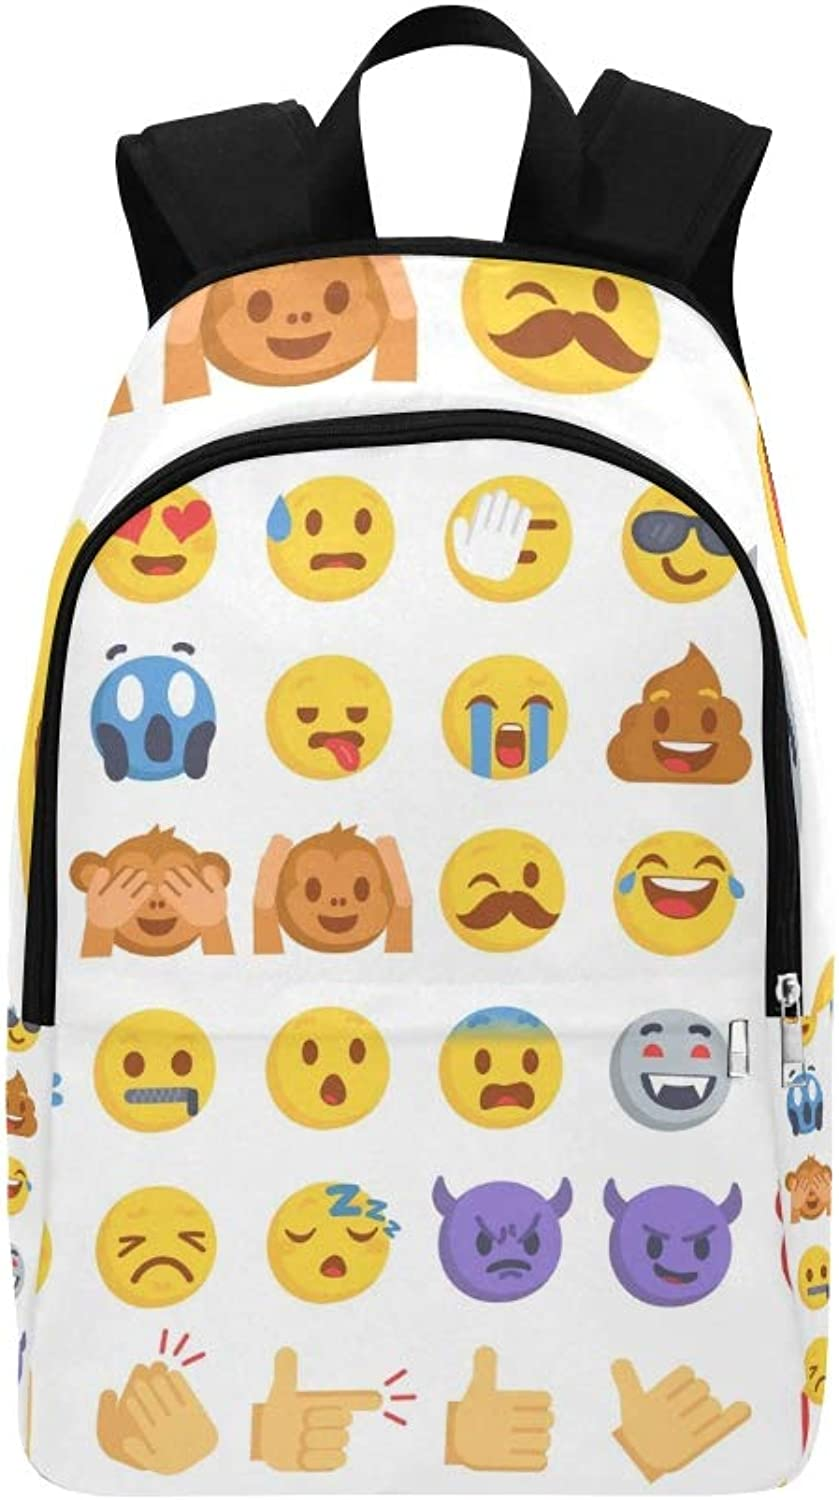 Cartoon Emoji Collection Set Emoticons Different Casual Daypack Travel Bag College School Backpack for Mens and Women